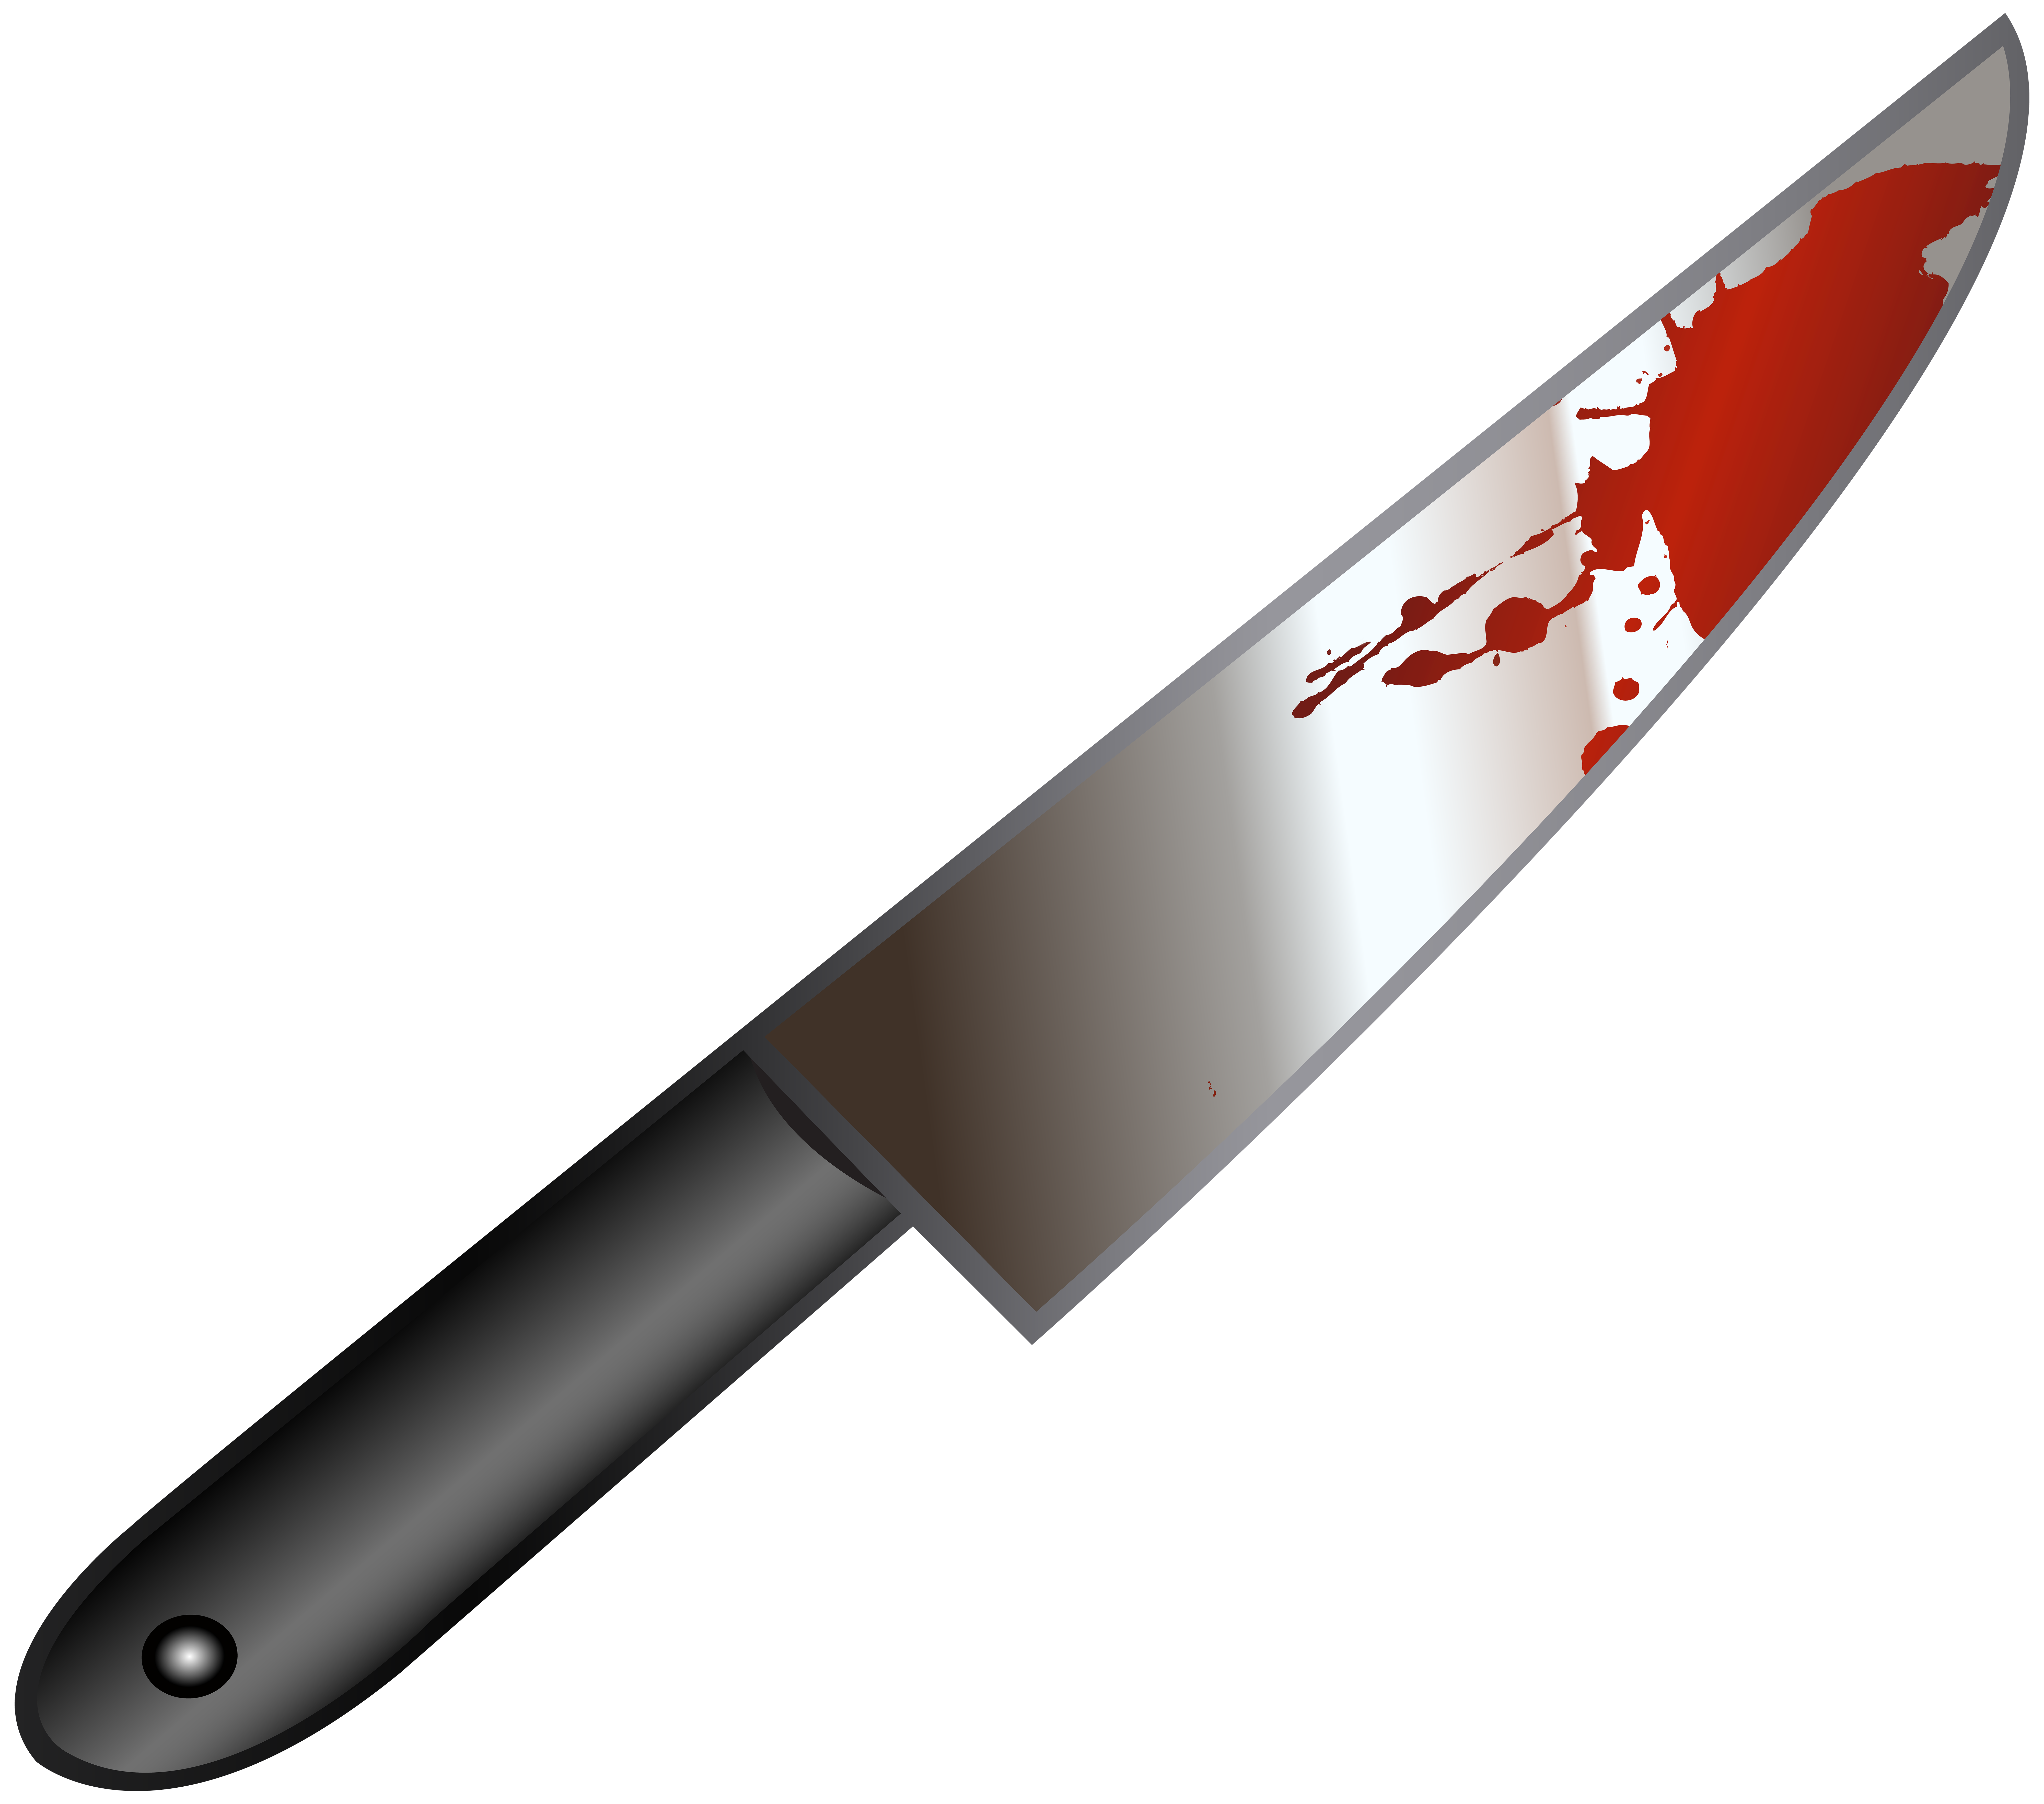 Bloody Knife PNG Clip Art Image.